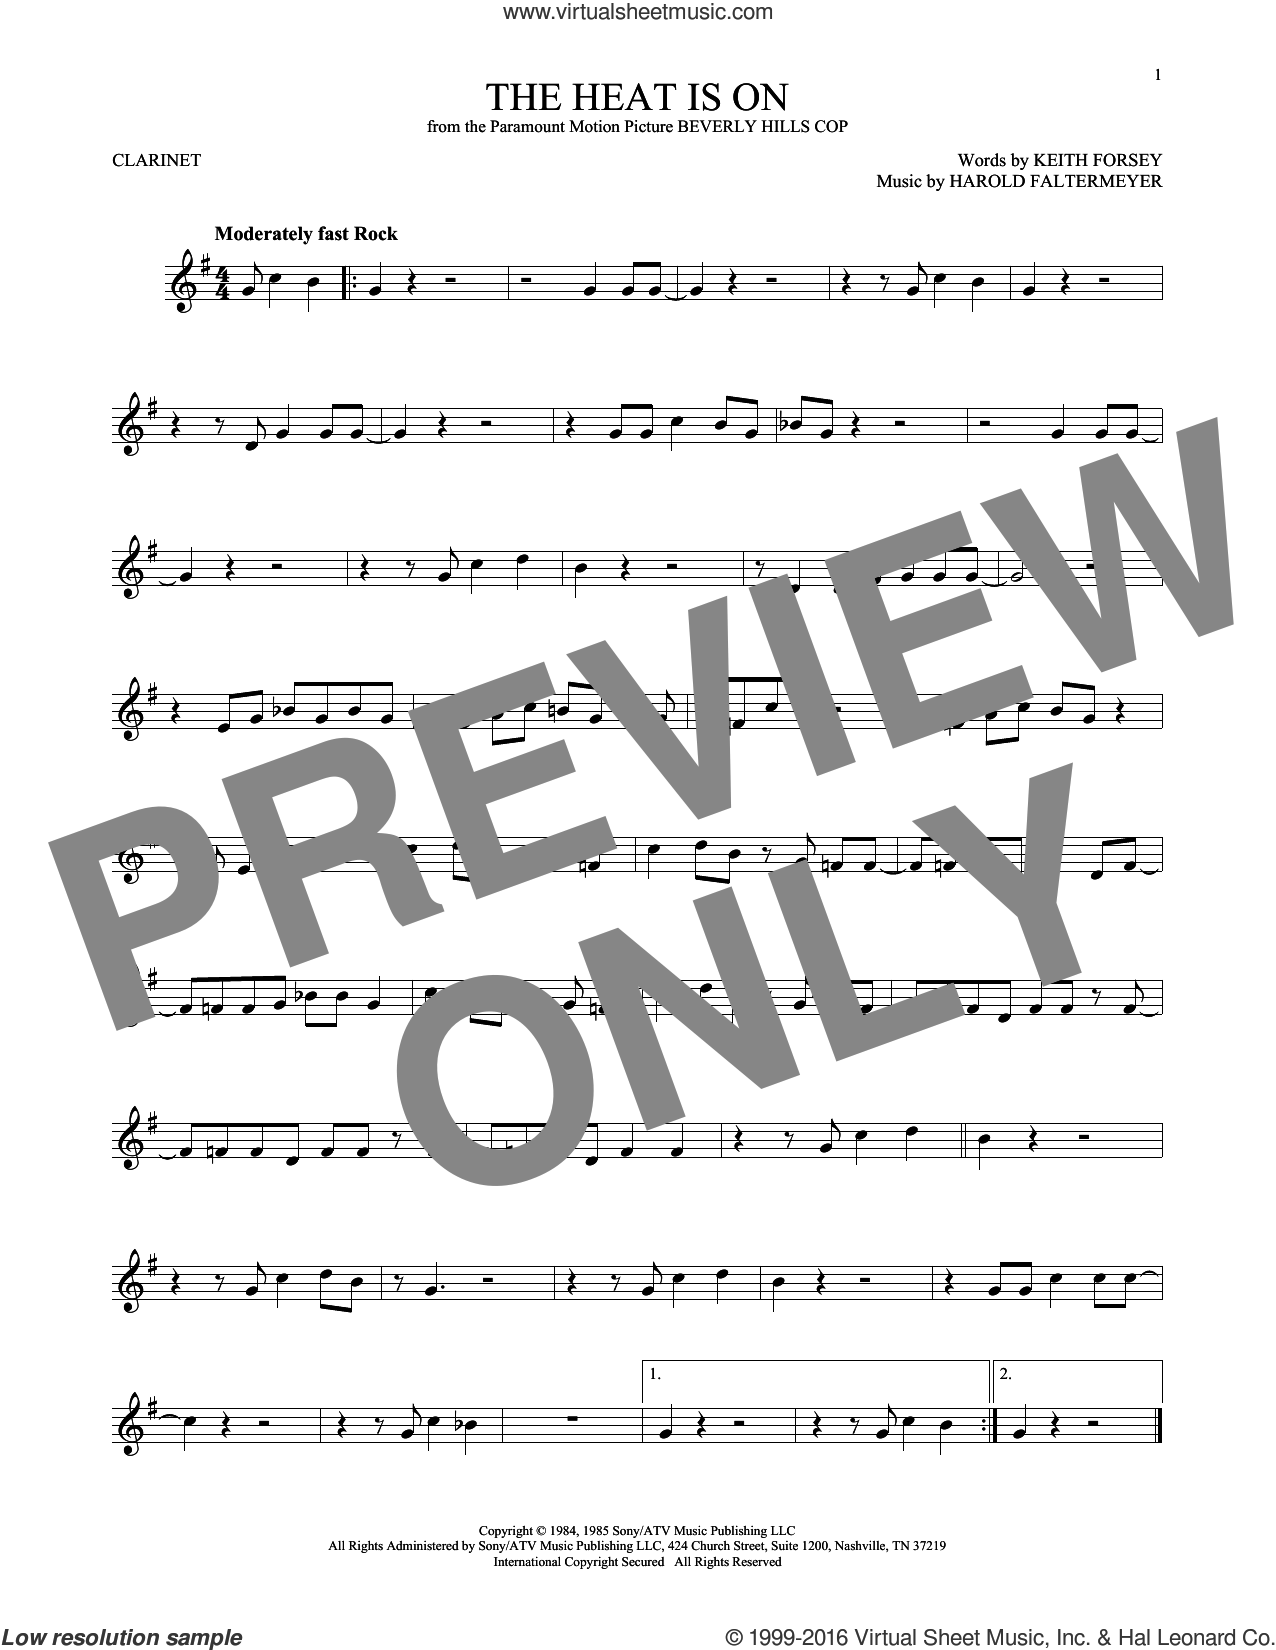 The Heat Is On sheet music for clarinet solo by Glenn Frey, Harold Faltermeyer and Keith Forsey, intermediate skill level